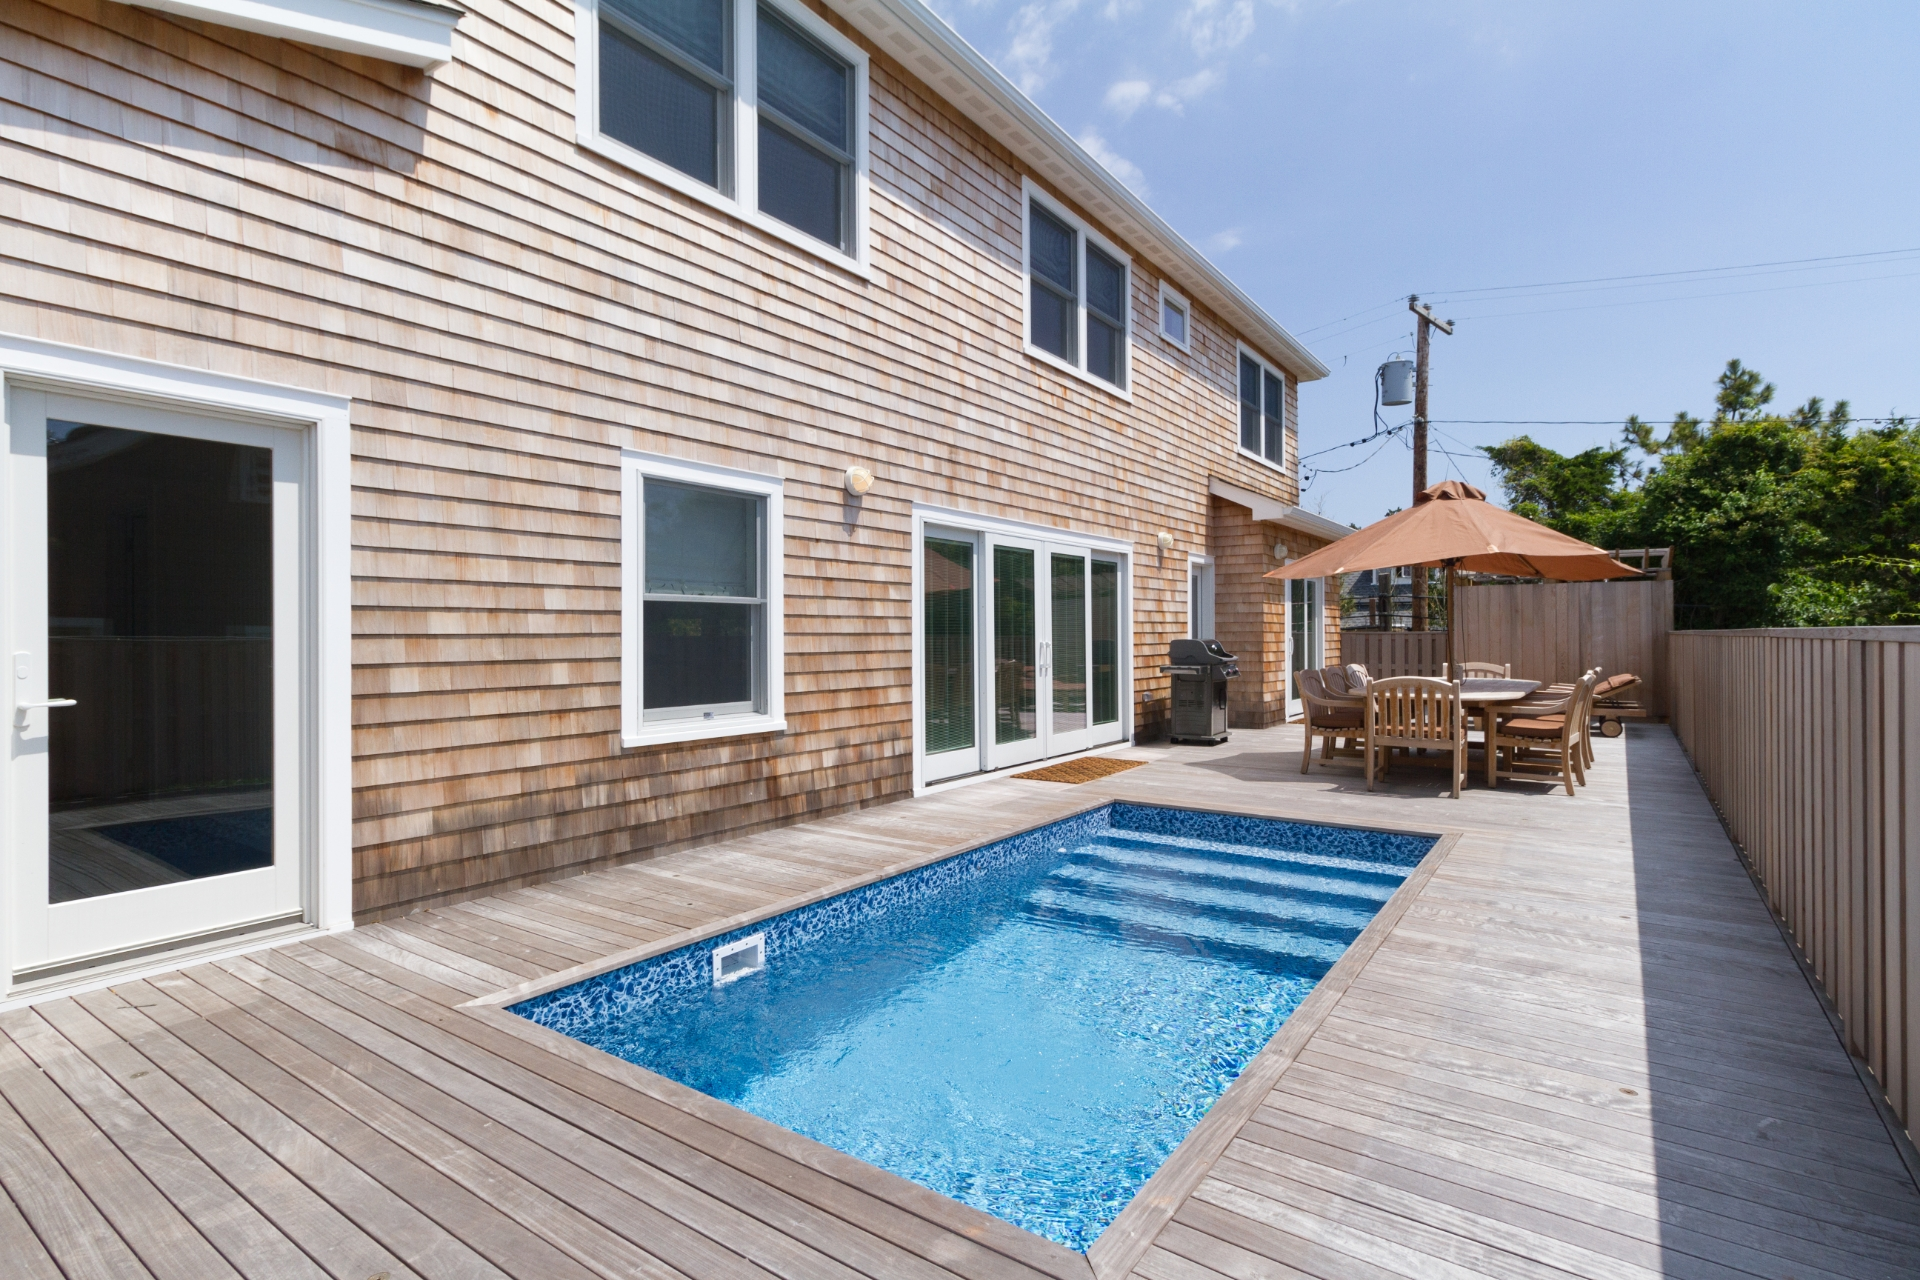 New construction close to the beach with a Pool! Only a 2 minute walk to the beach! This 4 bedroom 2.5 bath house has everything you need to enjoy life on Fire Island.  The first floor of the home consists of a screened porch which opens into a large great room with fire place.  Open seating throughout the living room, kitchen, and dining area provide enough room for the whole family to comfortably spend their time together. The living room features oversize french sliding doors that open onto the pool deck. The first floor is completed by a private master suite that includes its own deck access. On the second story, the home features 3 ample size bedrooms and a full bathroom. The 2nd story also features a convenient laundry room. All the bedrooms have lots of windows making them light and bright. This house is move-in ready. Call to schedule your showing!